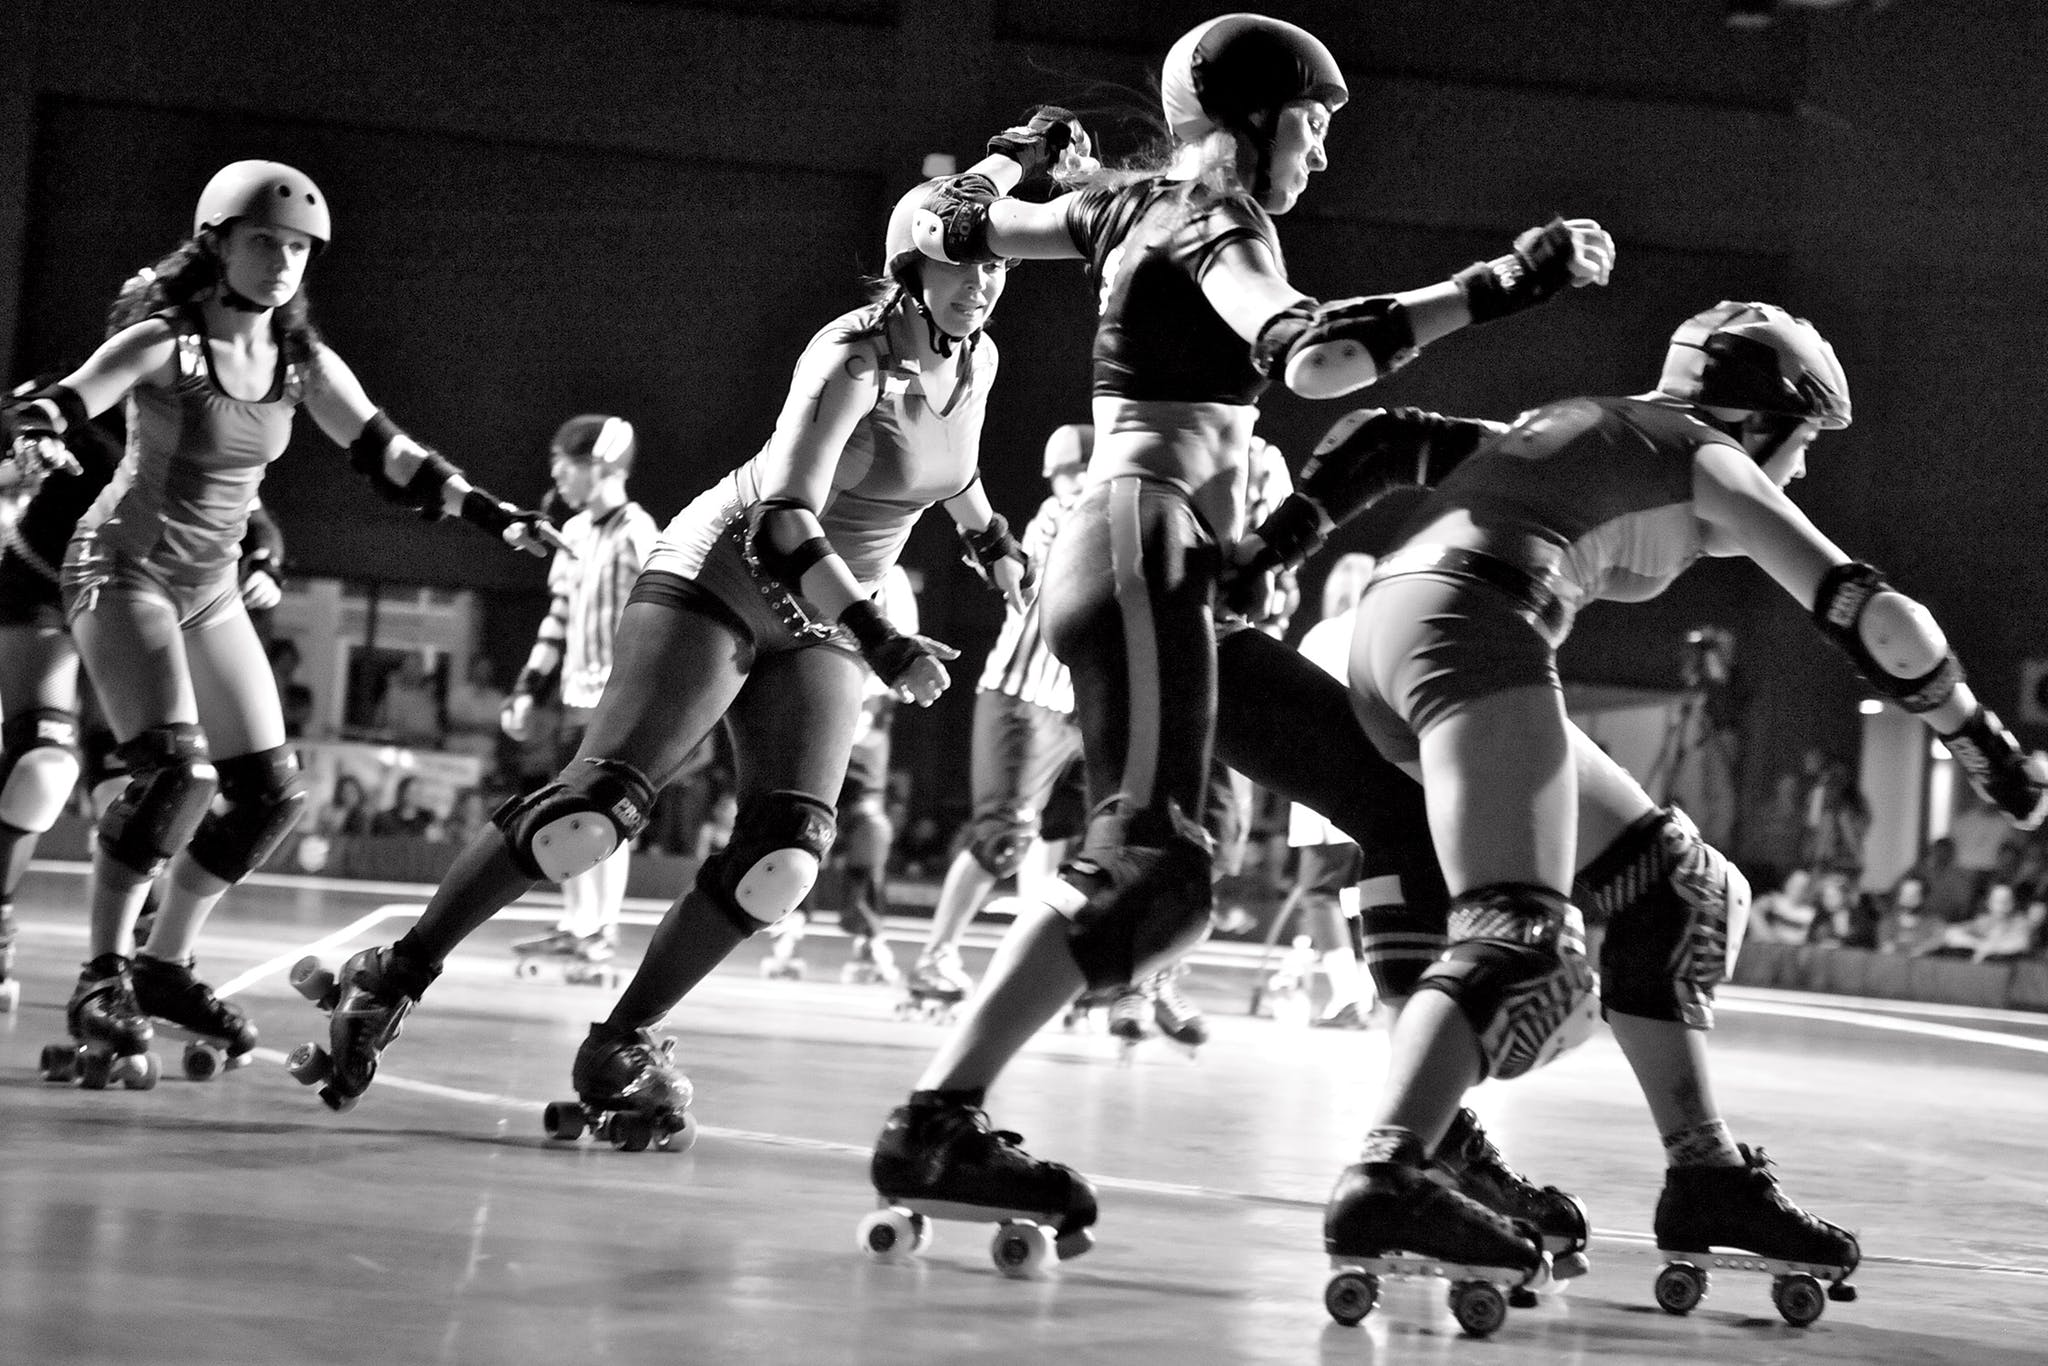 Players Chasing Amy, Babe Ruthless, Voodoo Doll, and Molotov M. Pale during a roller derby bout